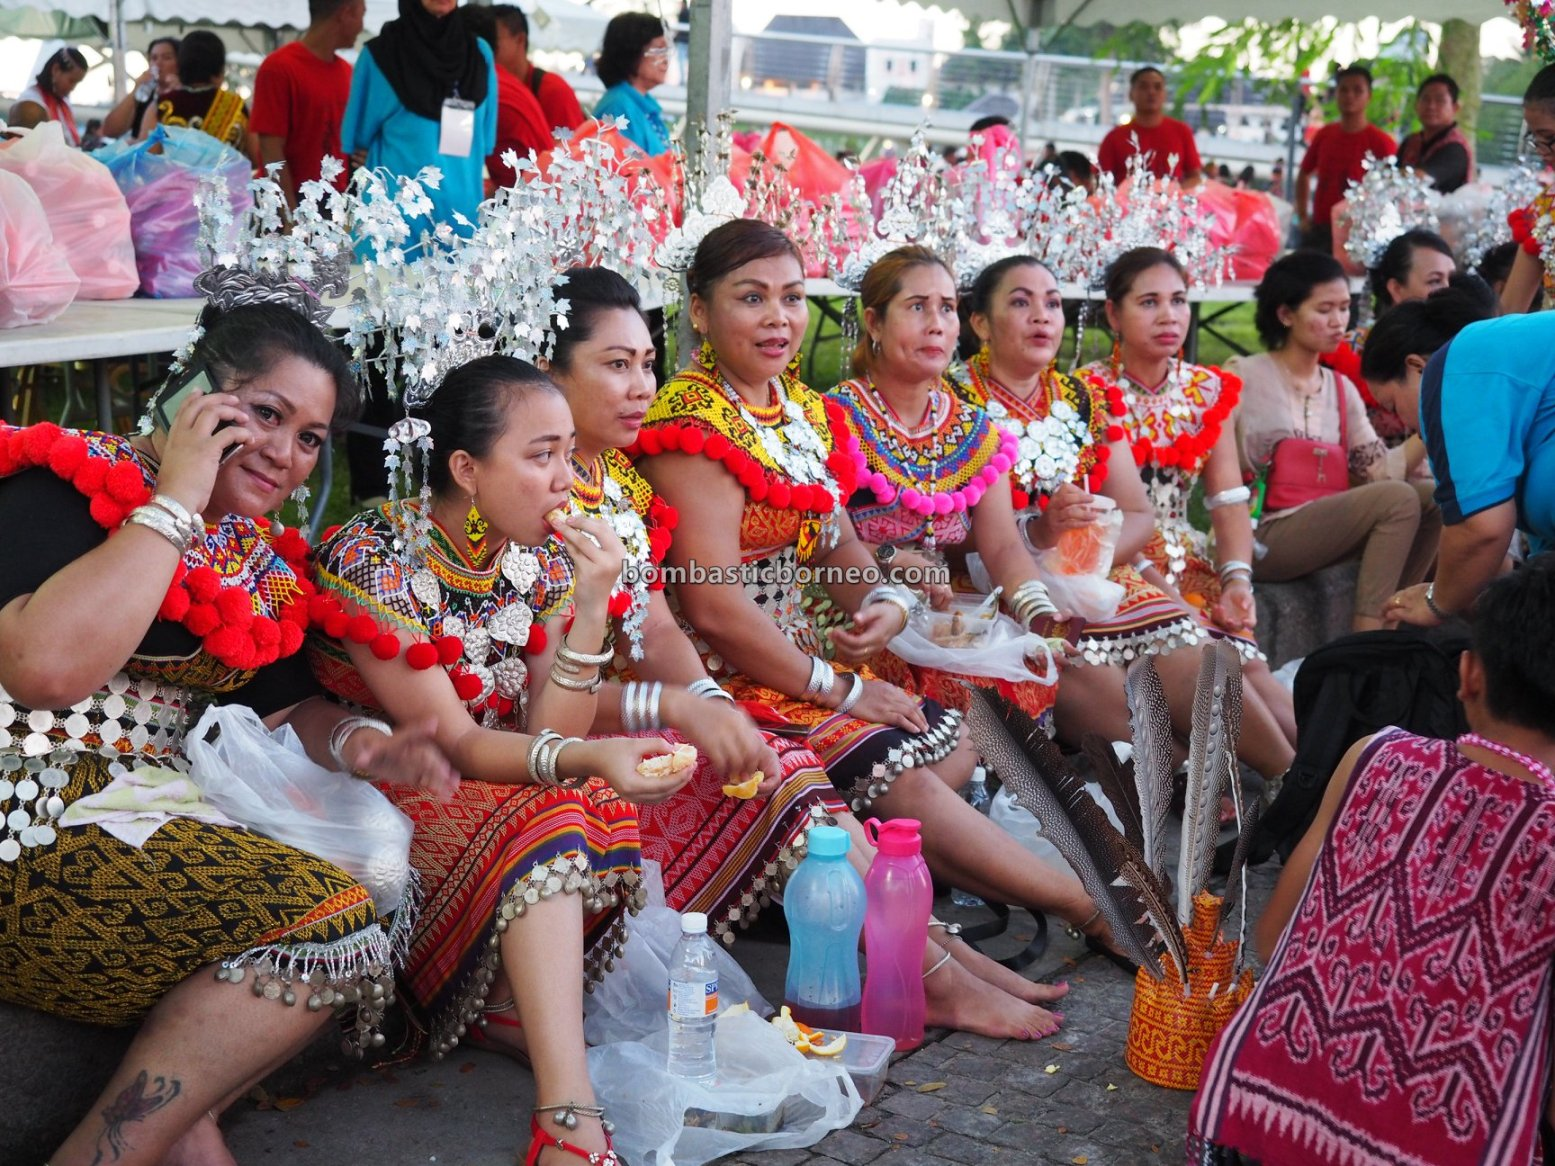 Gawai harvest festival, authentic, budaya, Kuching Waterfront, Ethnic, indigenous, native, tourism, tourist attraction, Travel guide, Trans Border, Borneo, 砂拉越土著丰收节, 马来西亚伊班族文化, 古晋原住民部落,